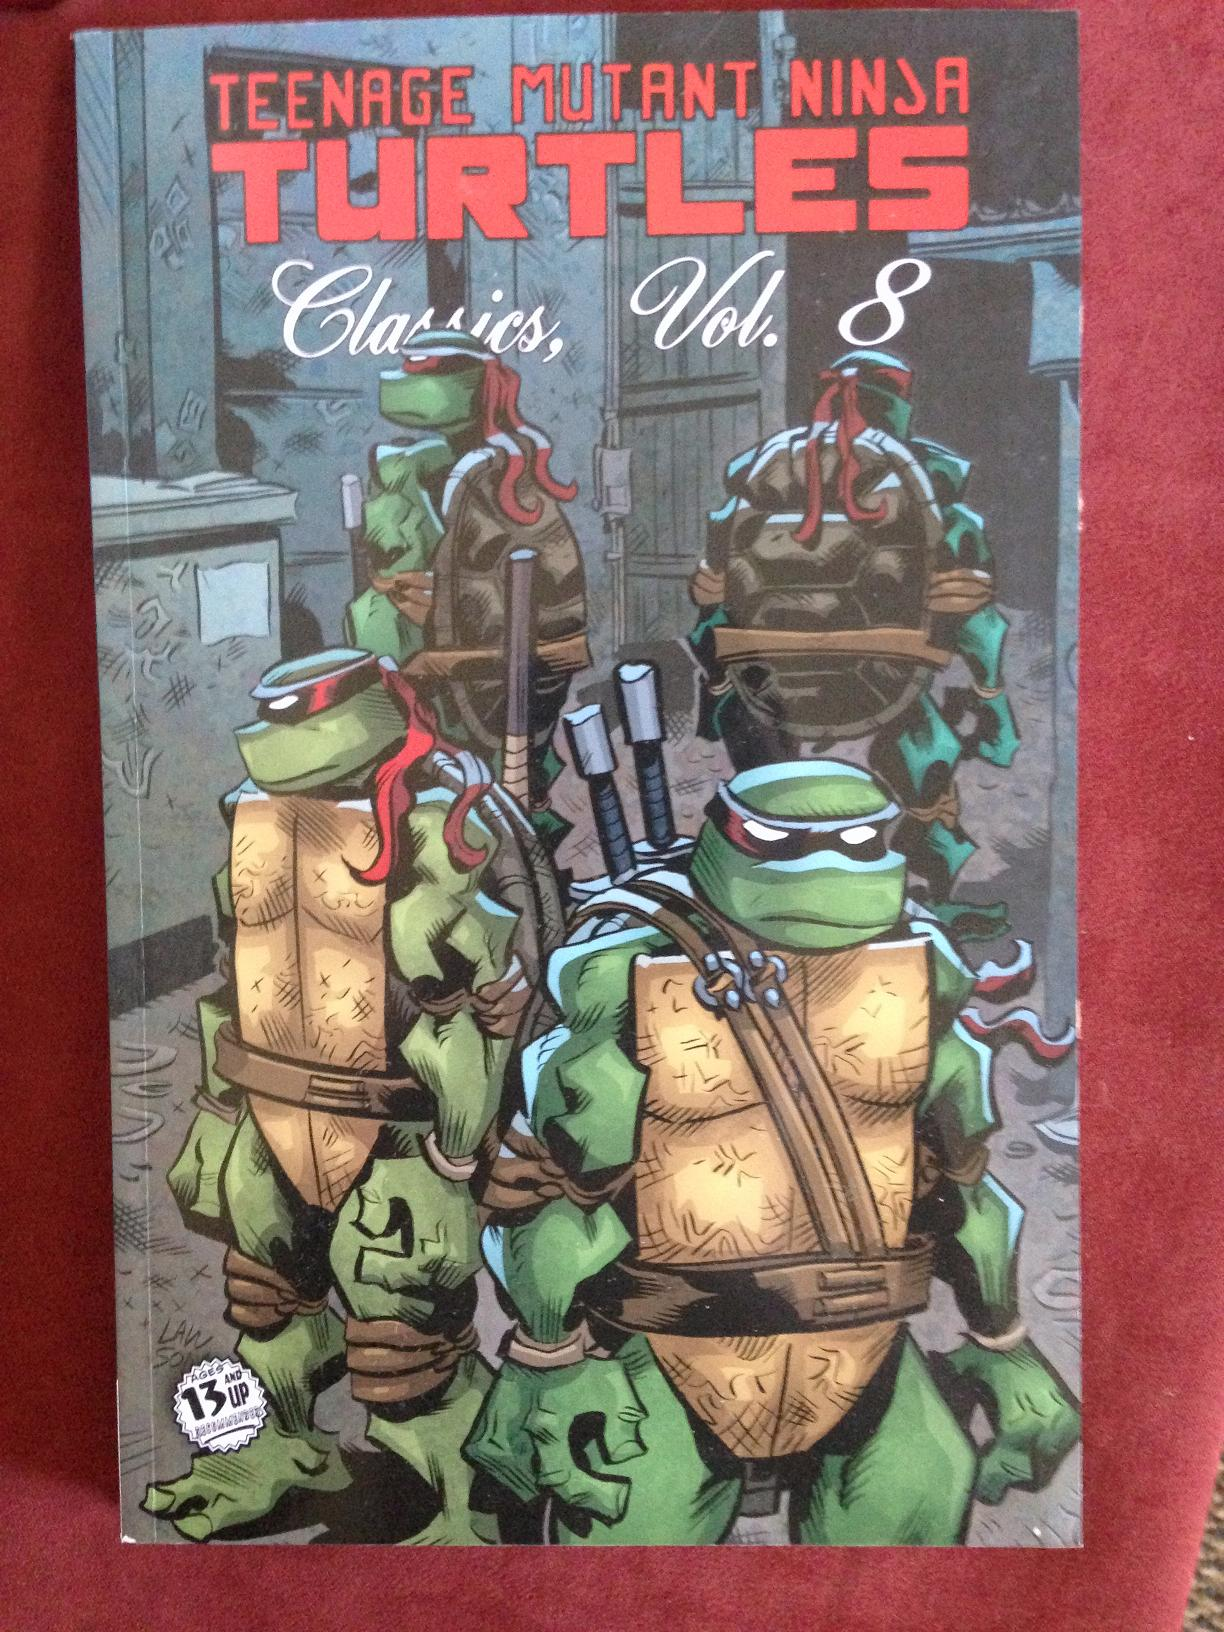 teenage mutant ninja turtles classics vol 8 (1)